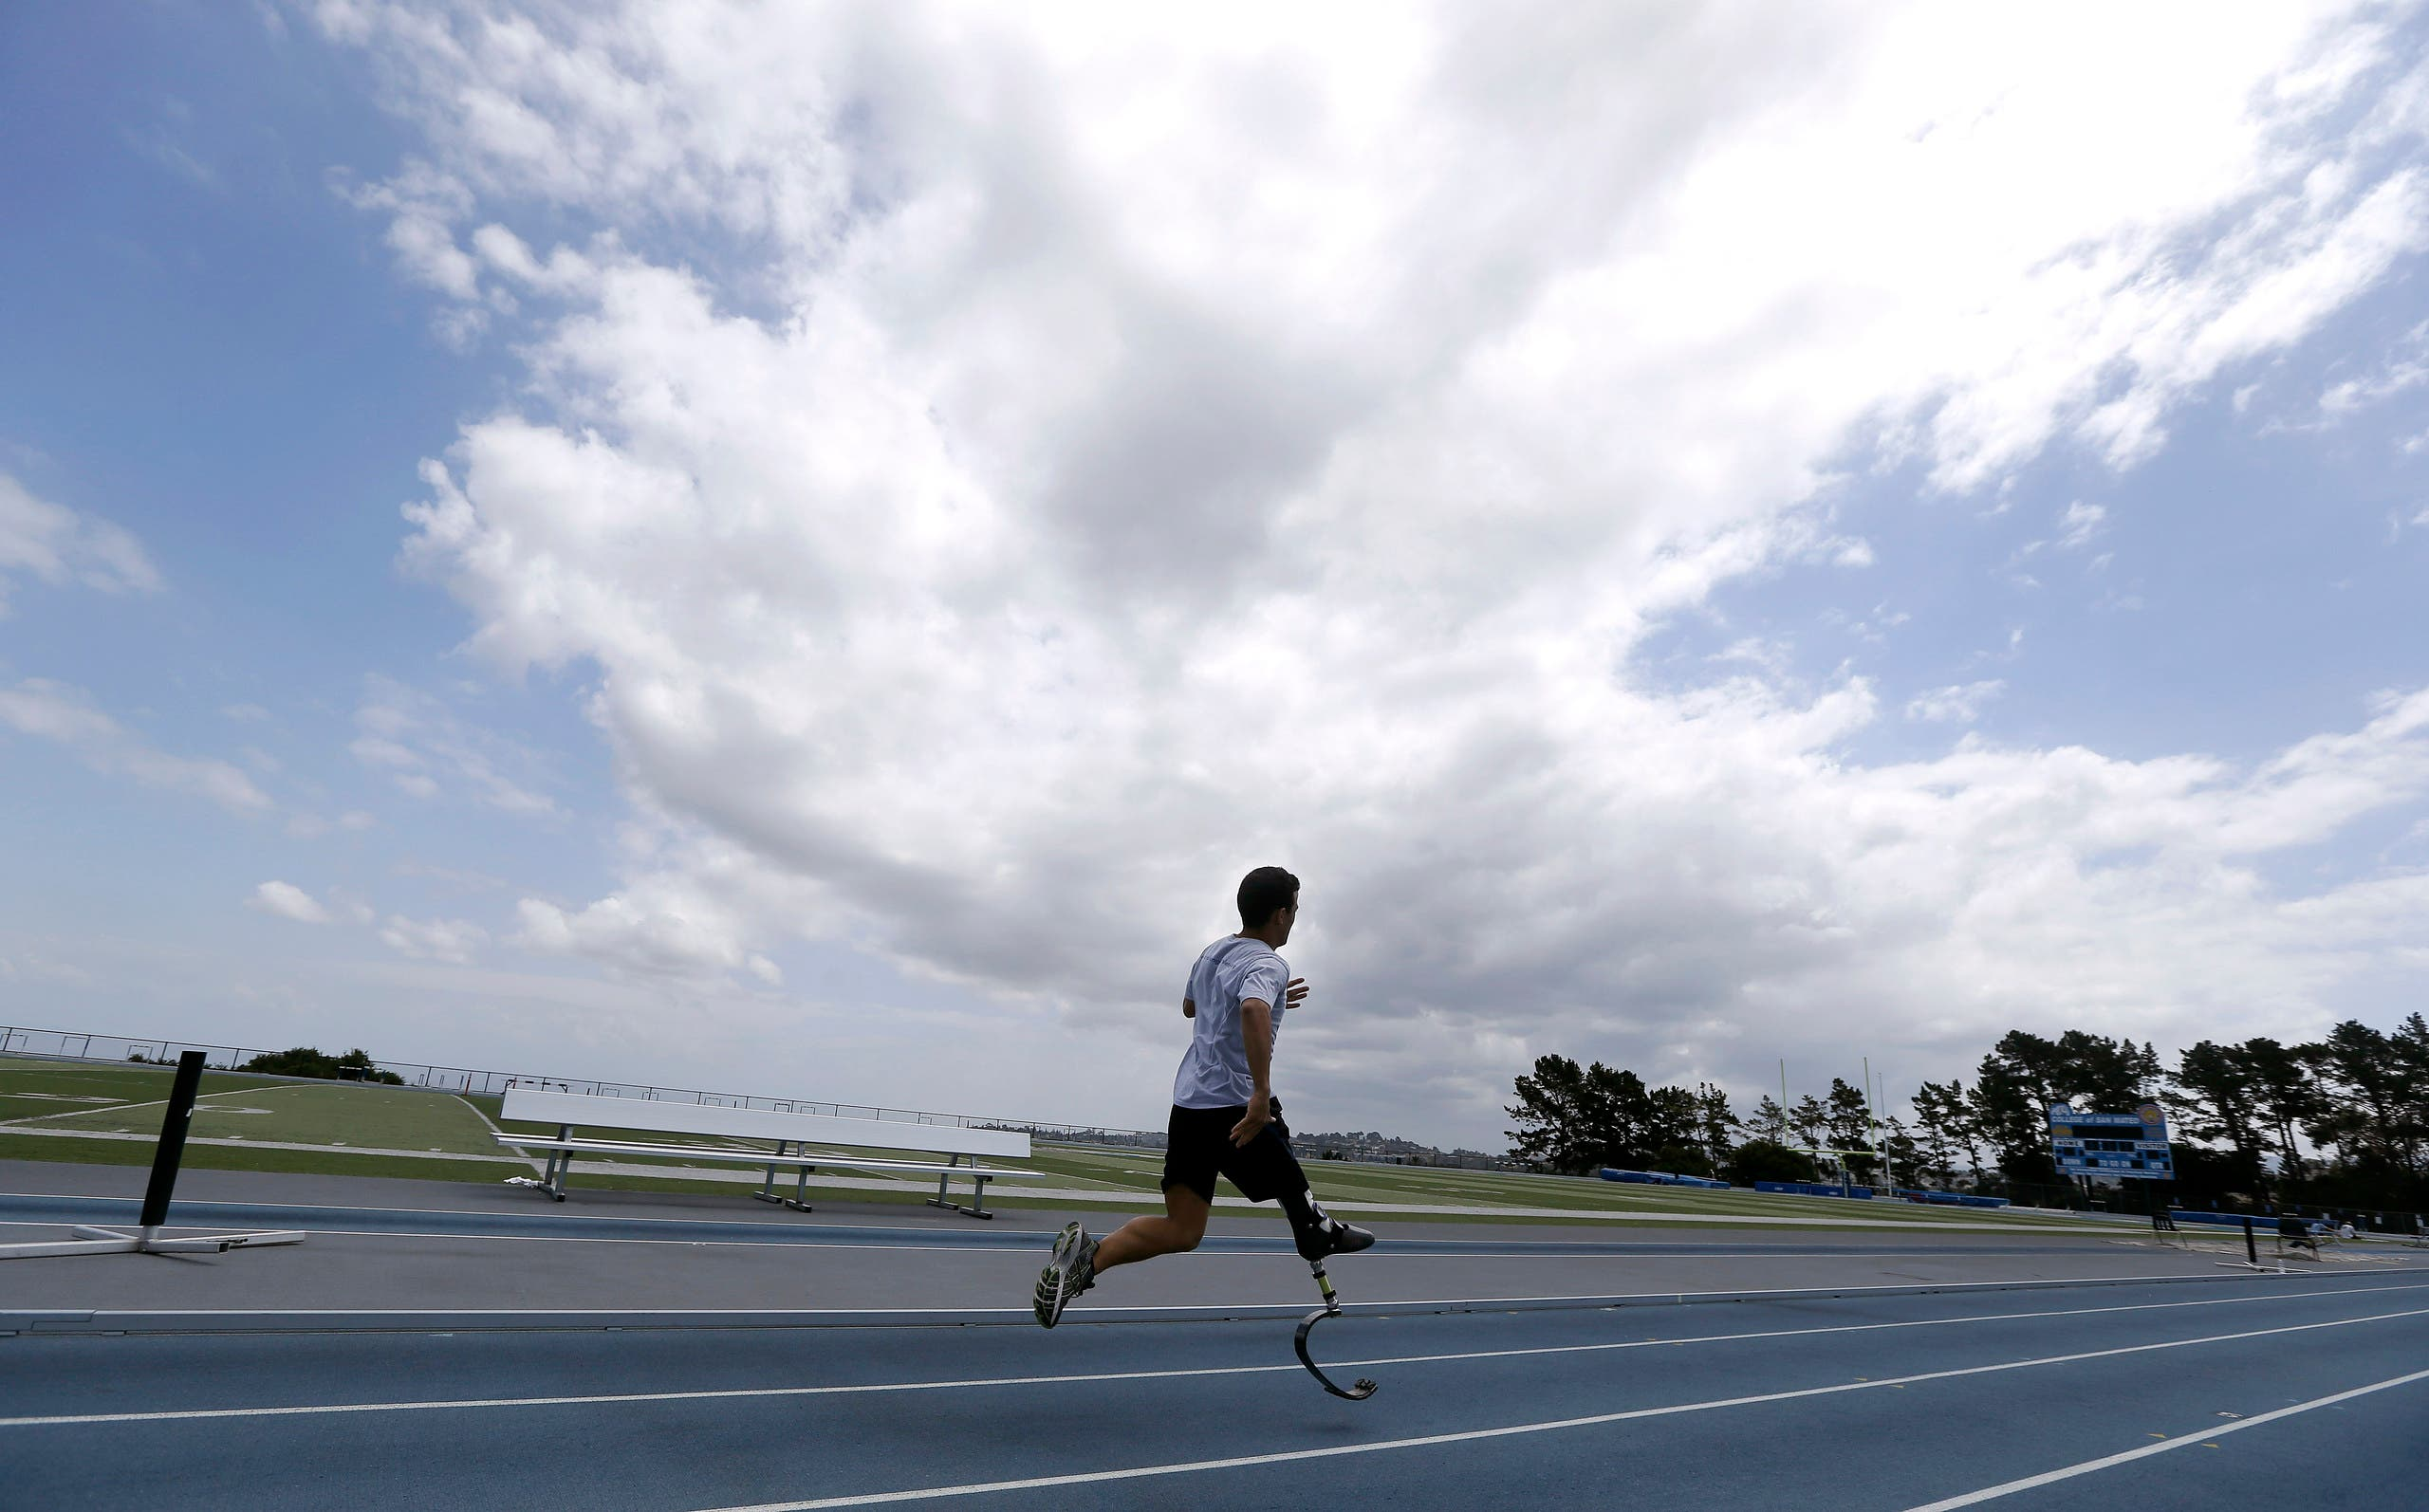 In this May 7, 2013, photo, Mohamed Lahna, a 2016 Paralympic hopeful in the triathlon, poses for a photograph on the College of San Mateo track in San Mateo, Calif. AP